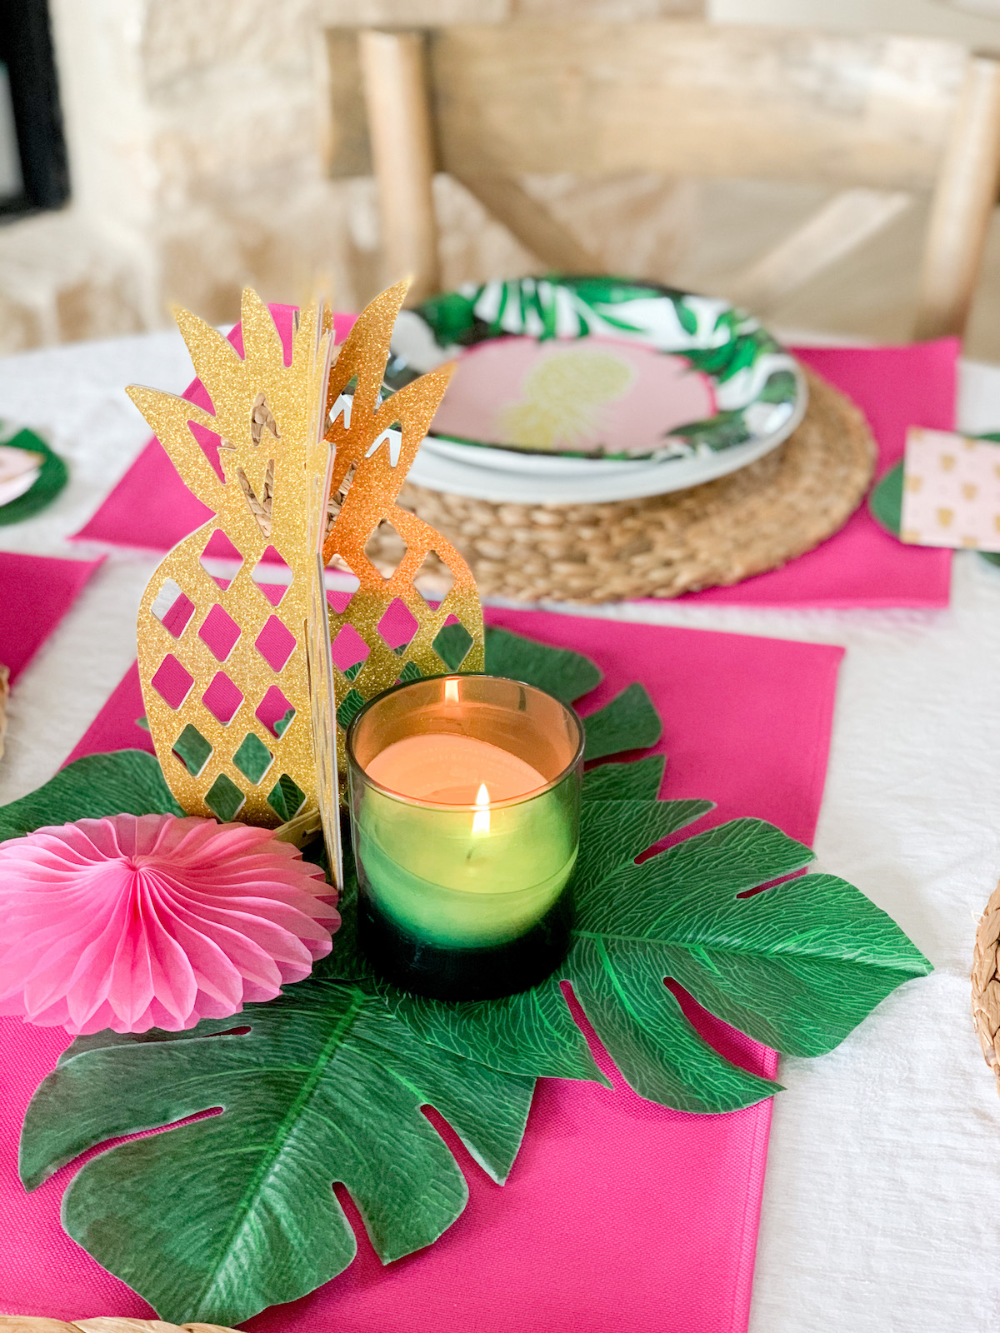 Lola's First Birthday: A Copacabana Party! | Cathedrals & Cafes Blog #pink #pinkparty #partydecor #birthday #birthdayparty #kidsbirthday #bithdayparties #copacabana #palmleaves #pinkandwhite #dogs #dogparty #furbaby #labradors #labs #yellowlab #partydecor #partyplanning #easydecor #birthdaycake #turningone #dogmom